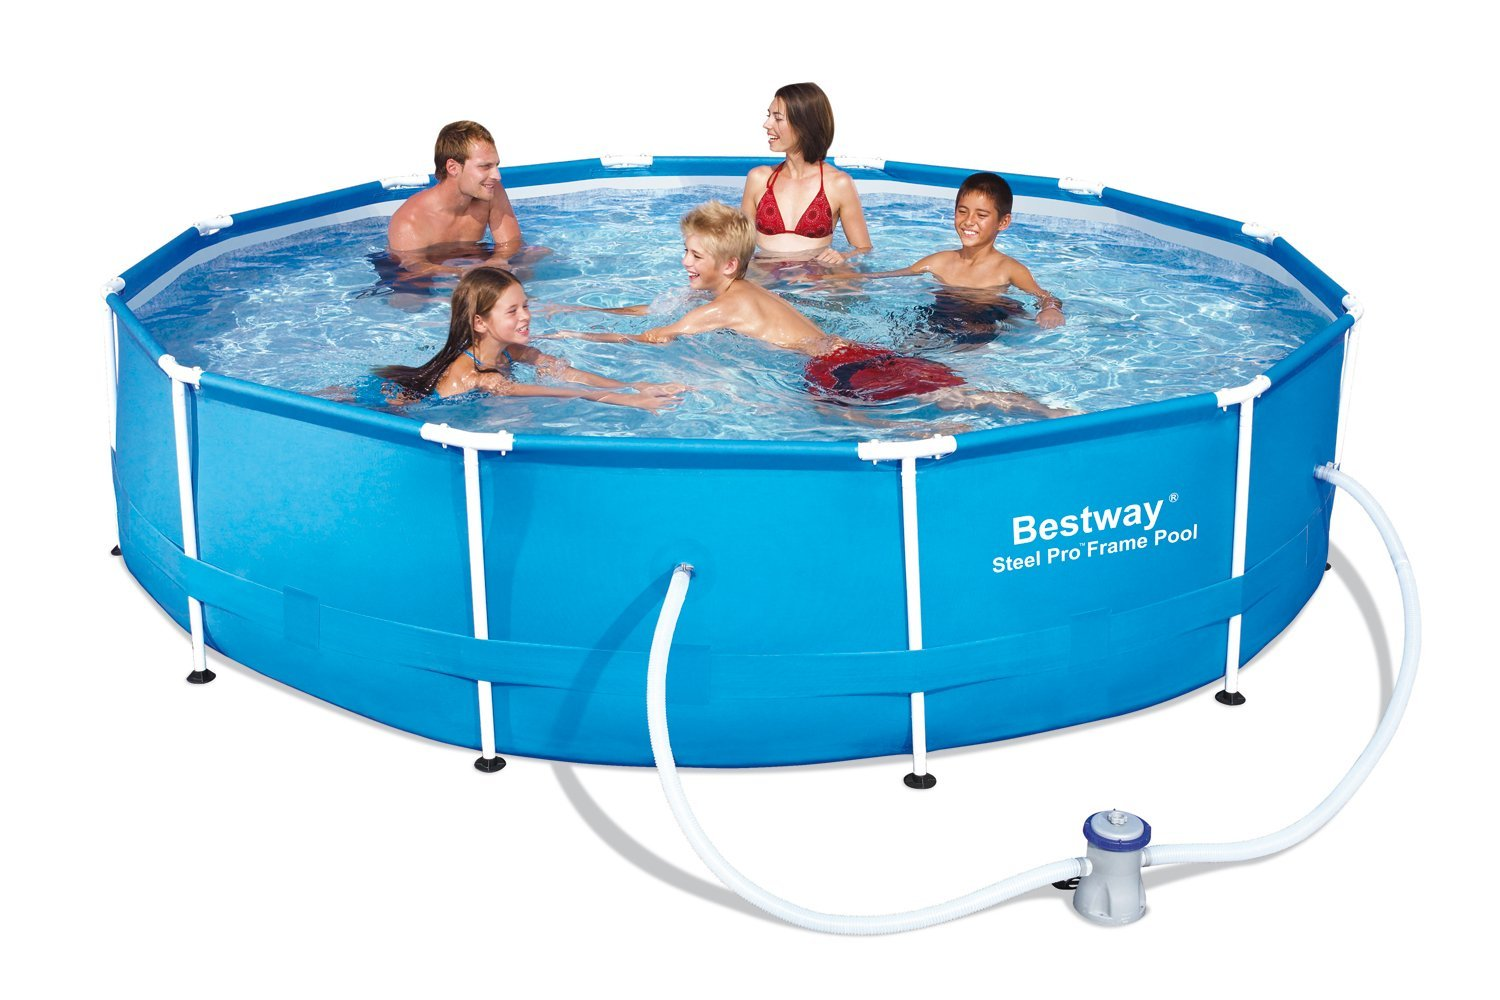 Bestway piscine ronde steel frame le test de la r daction for Piscine bestway